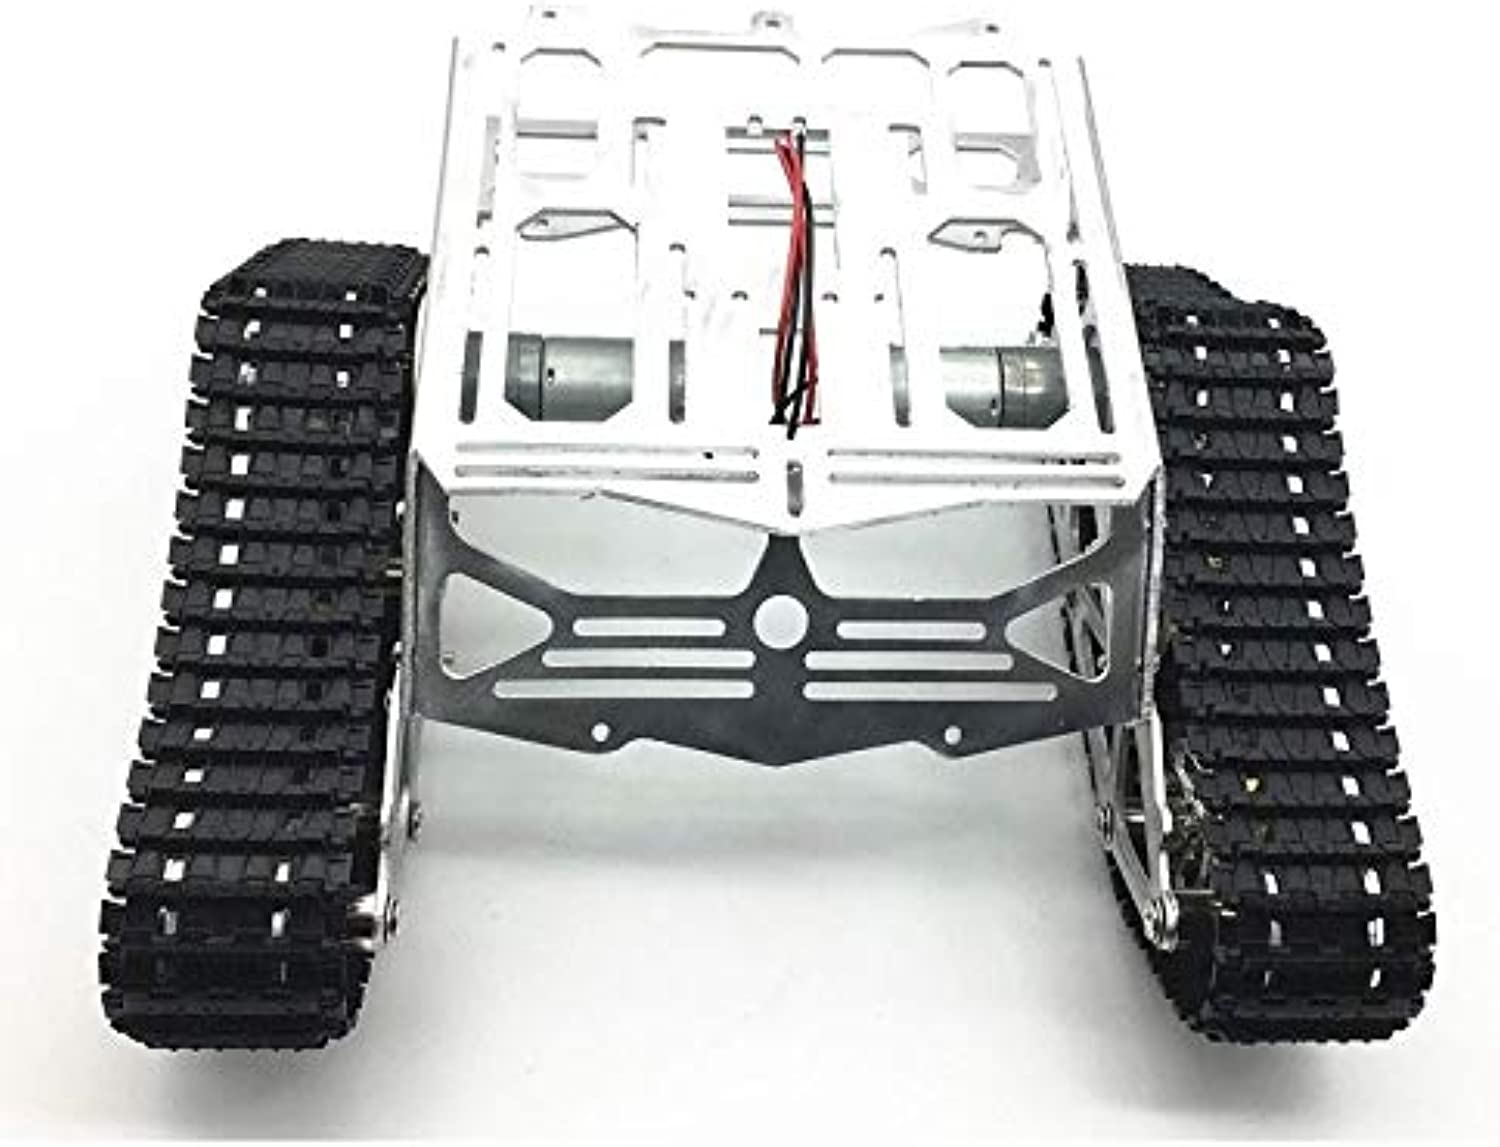 Generic Domibot DIY Smart Robot Tank Chassis Kit RC Tracked Car with Crawler Kit for Arduino